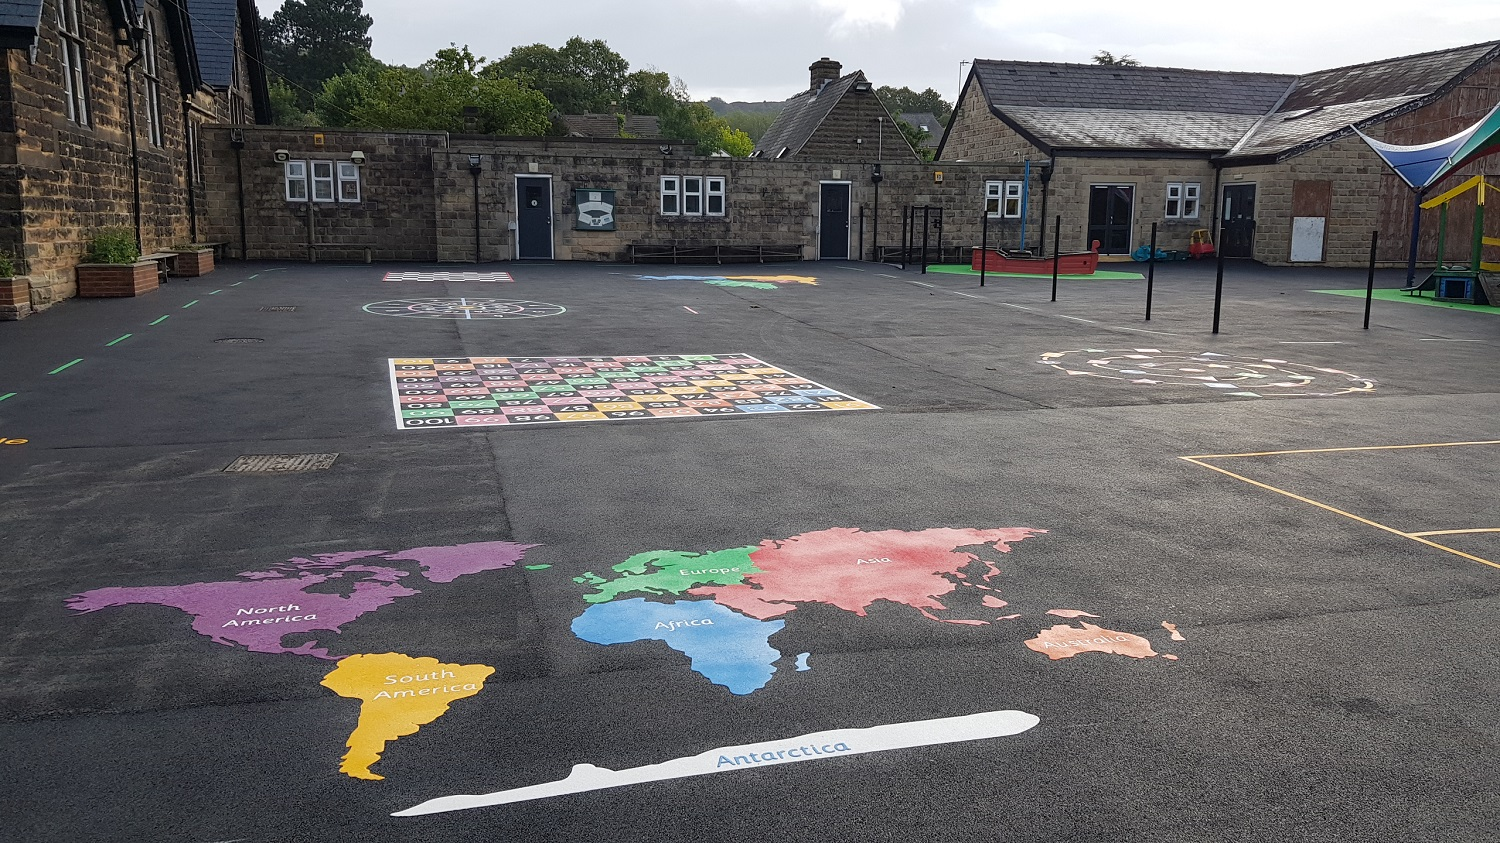 P8 Playground Tarmac Surfacing & Playground Markings at Ashover Primary School in Ashover